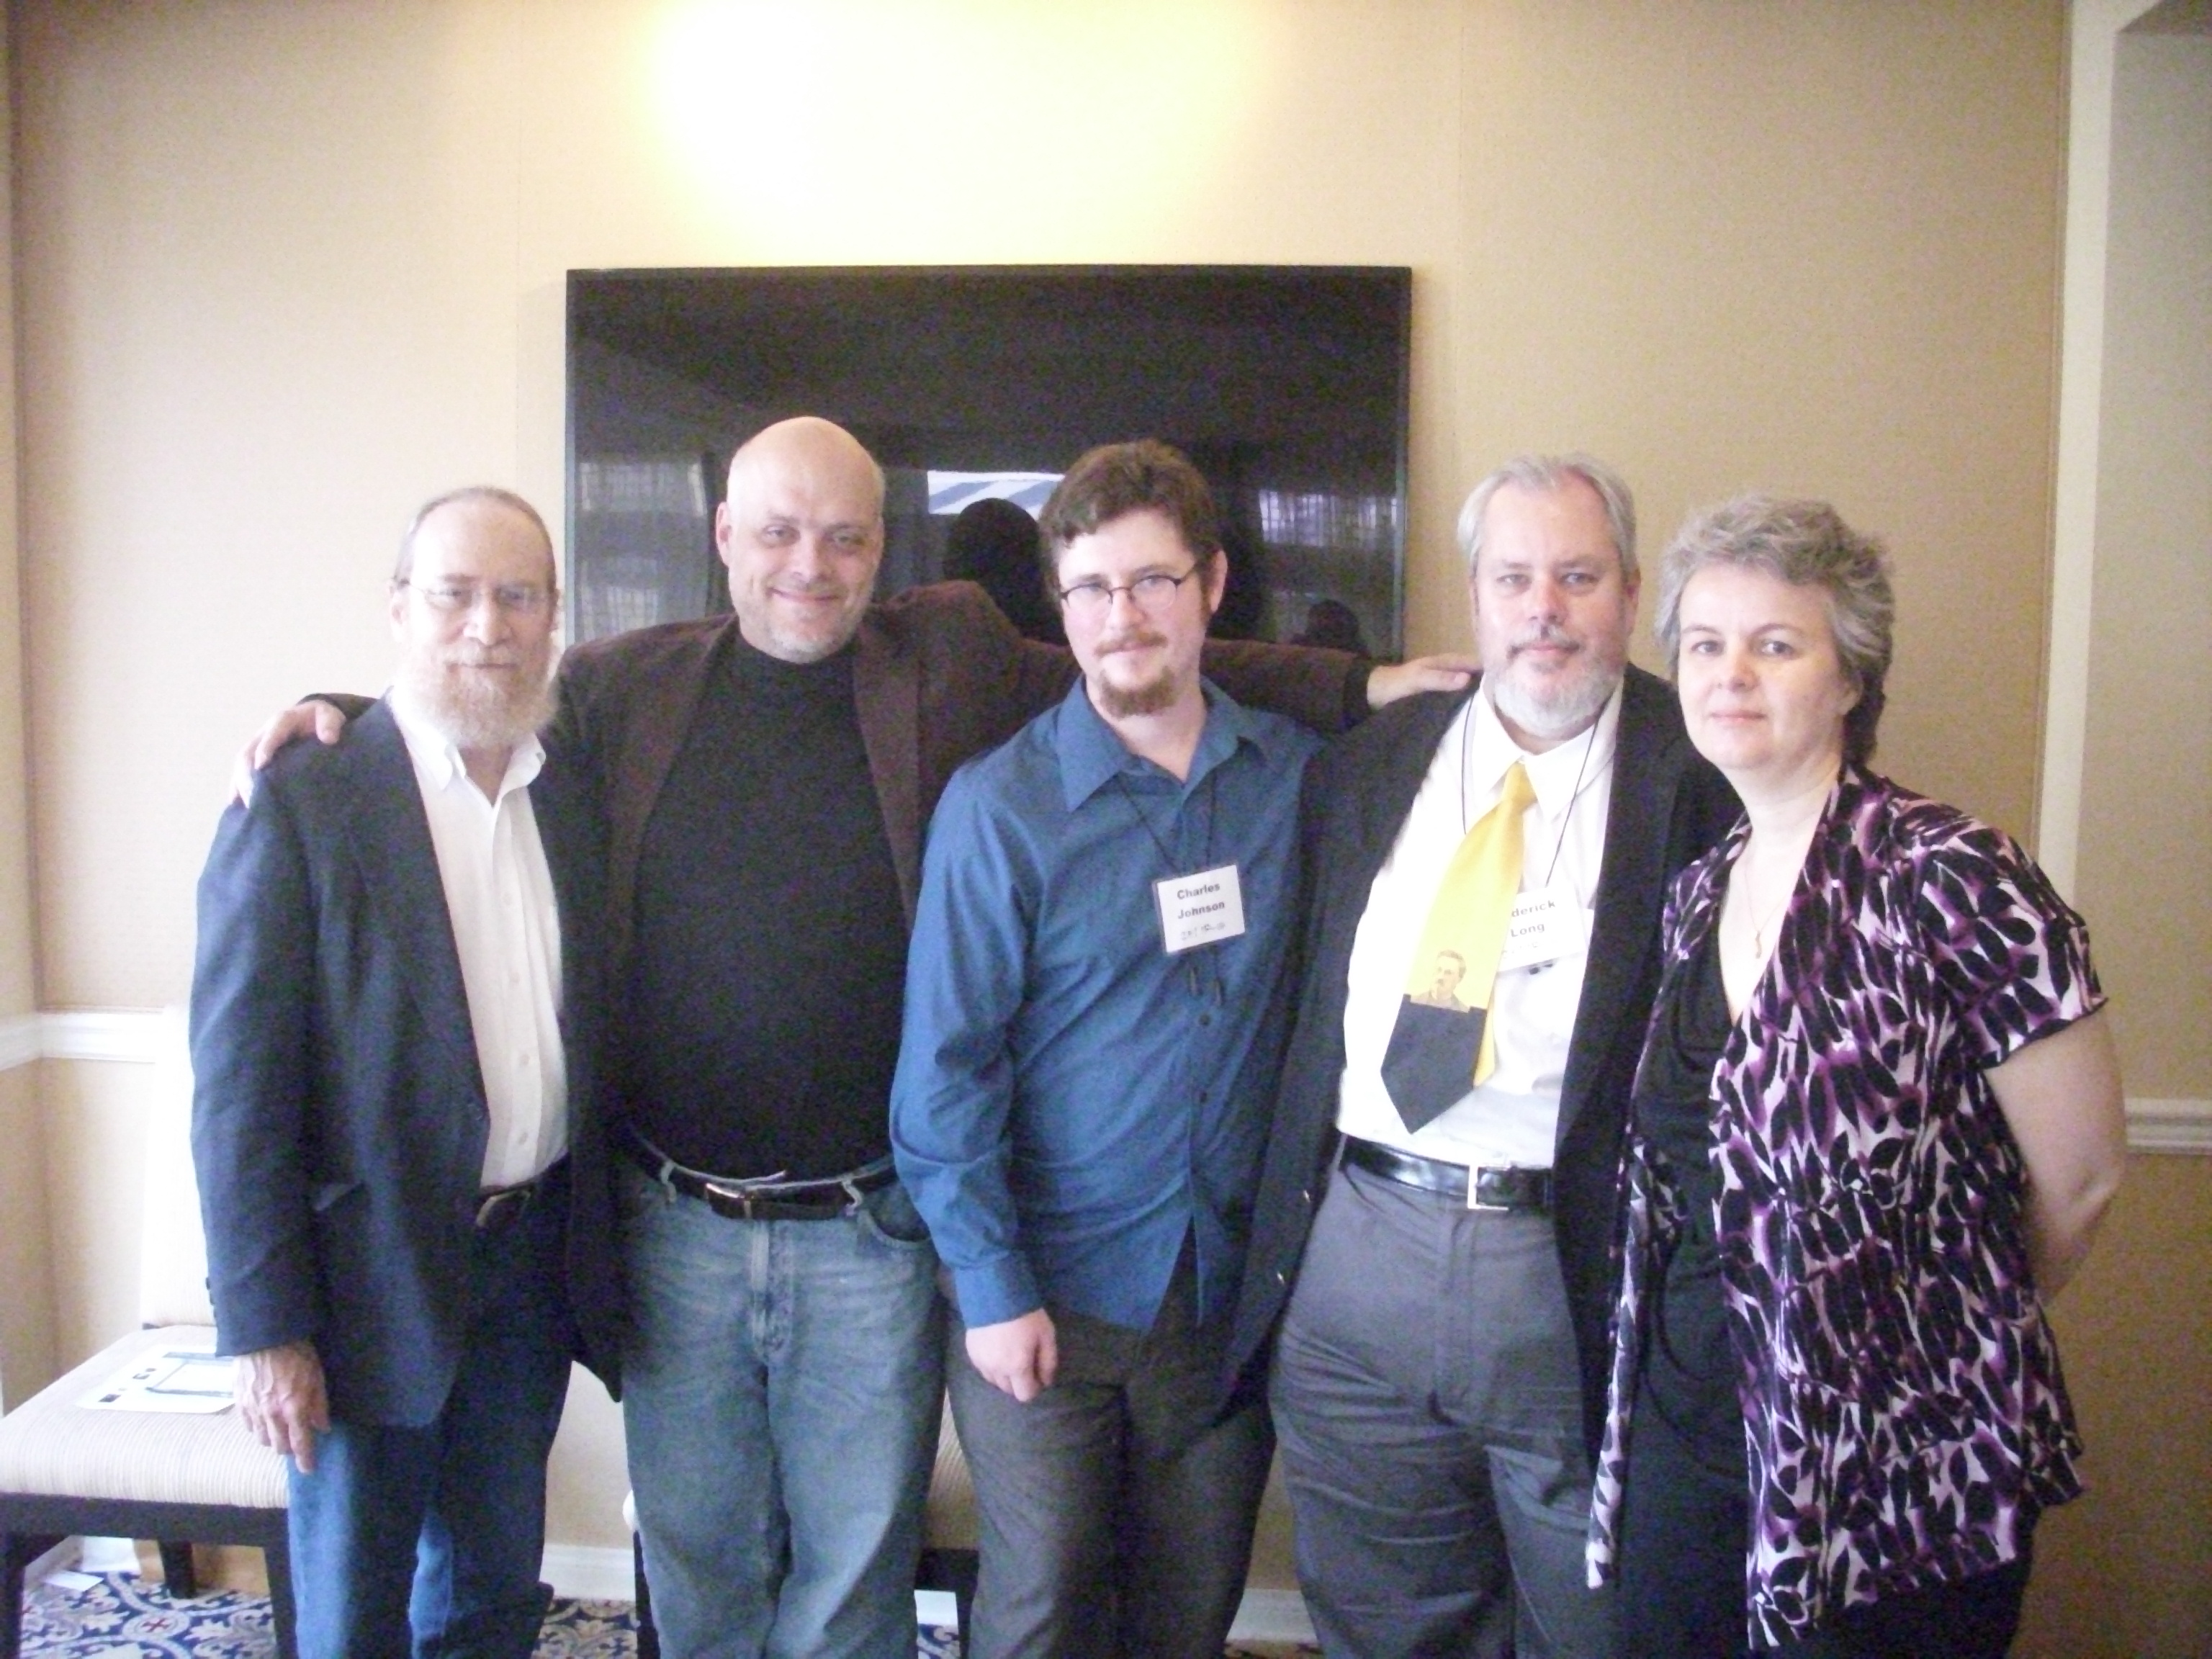 Sheldon Richman, Gary Chartier, Charles Johnson, Roderick Long, Jennifer McKitrick